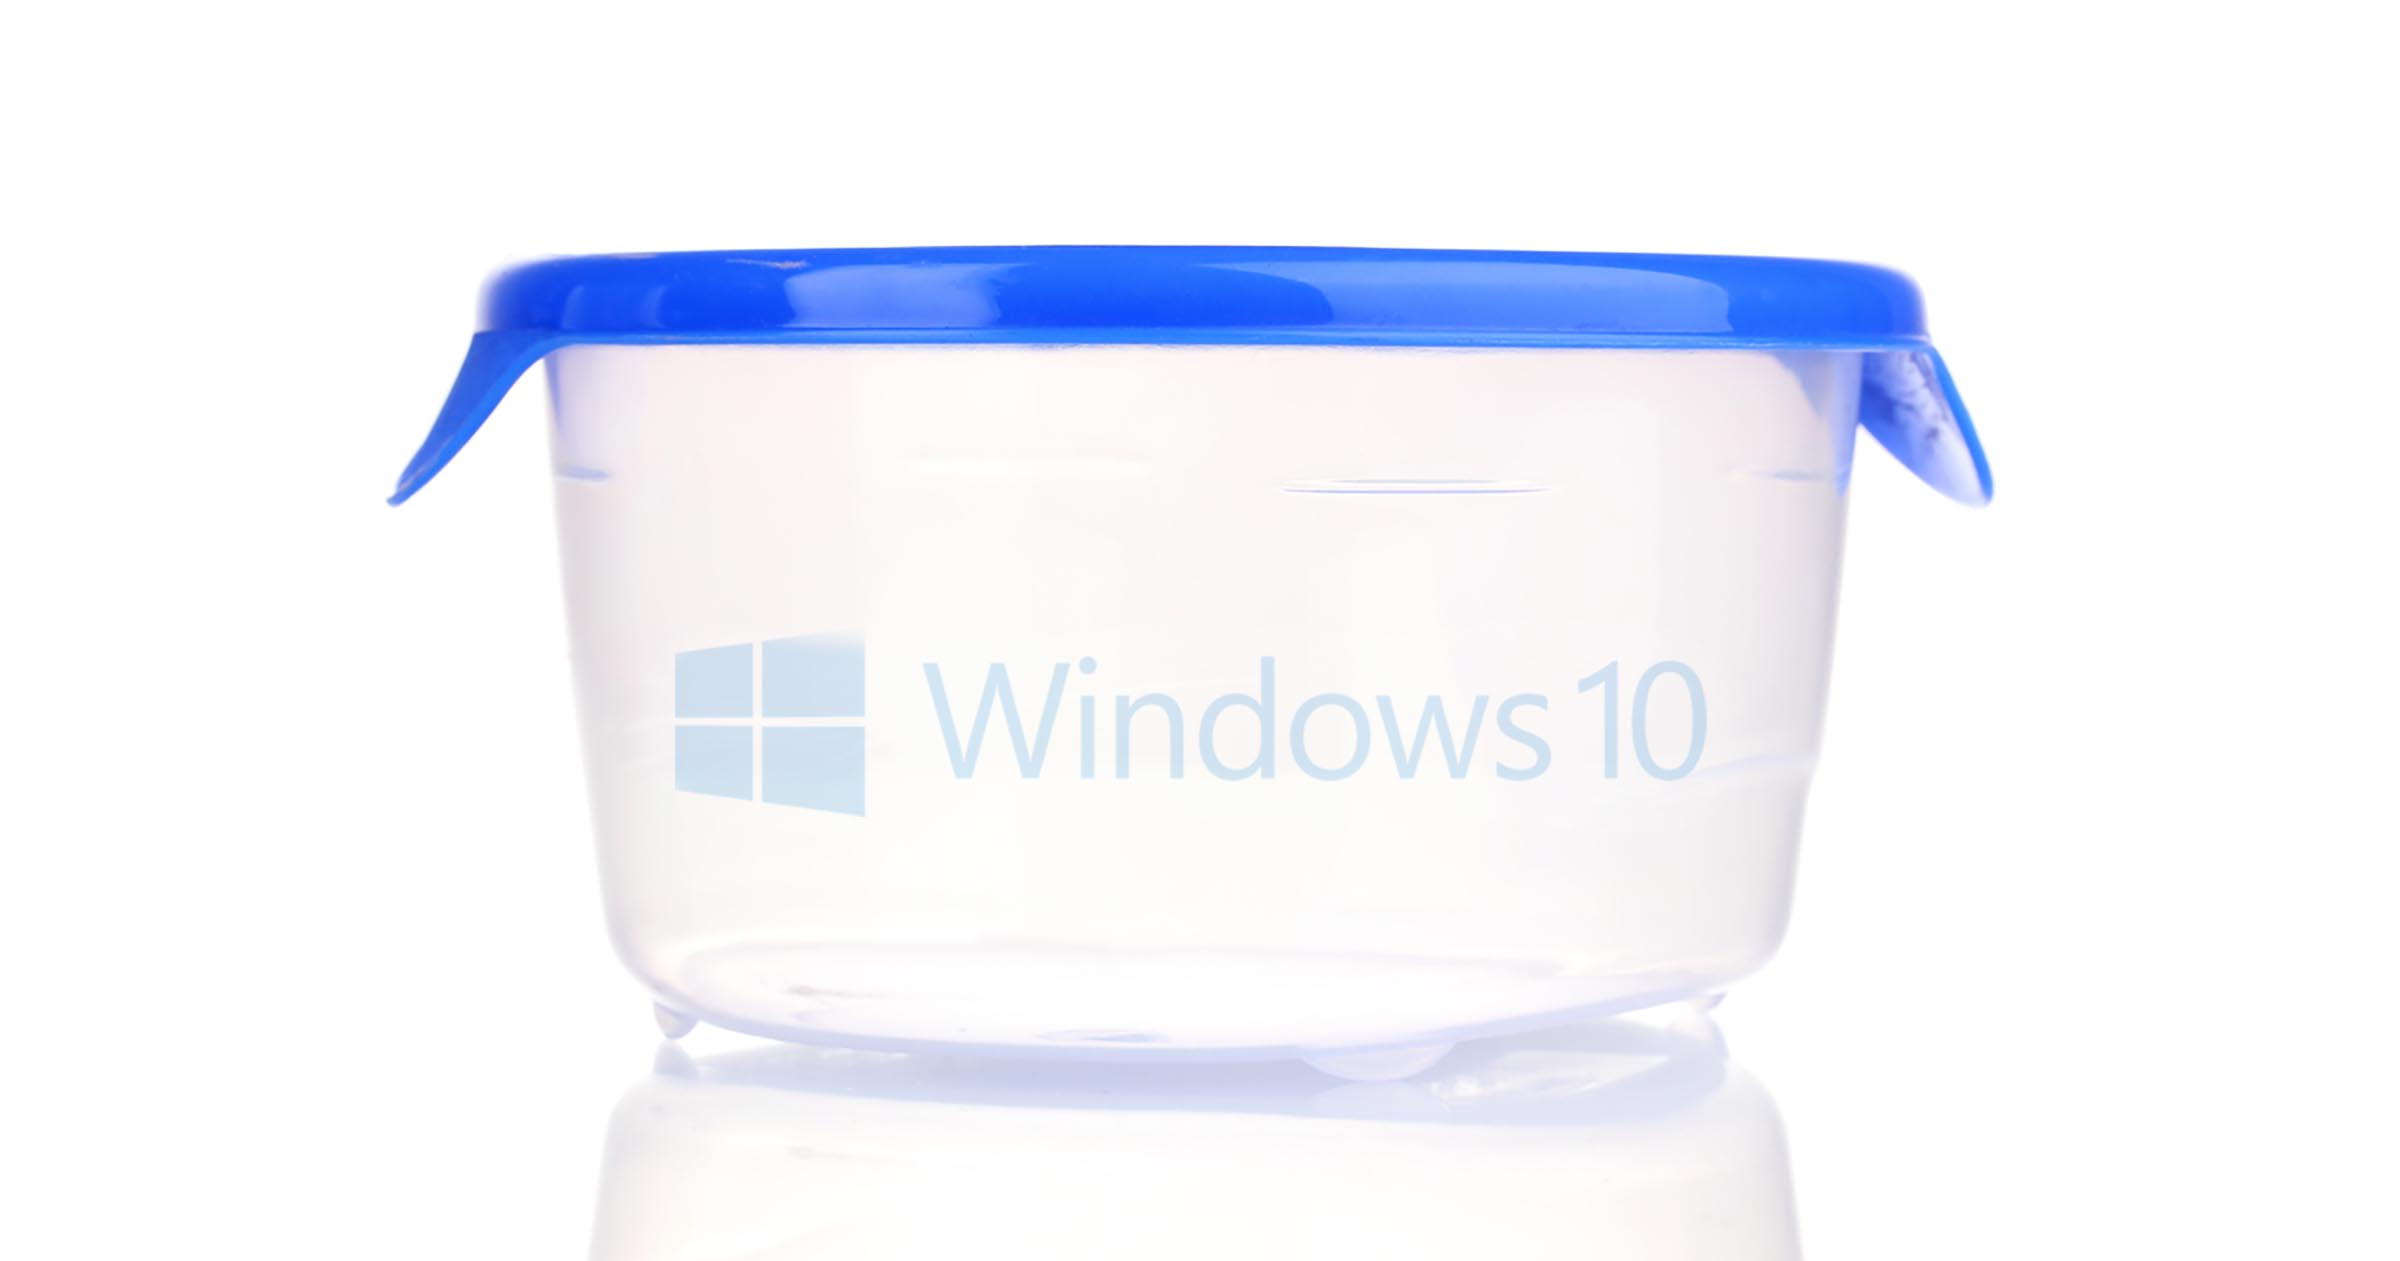 Windows 10 in a Container